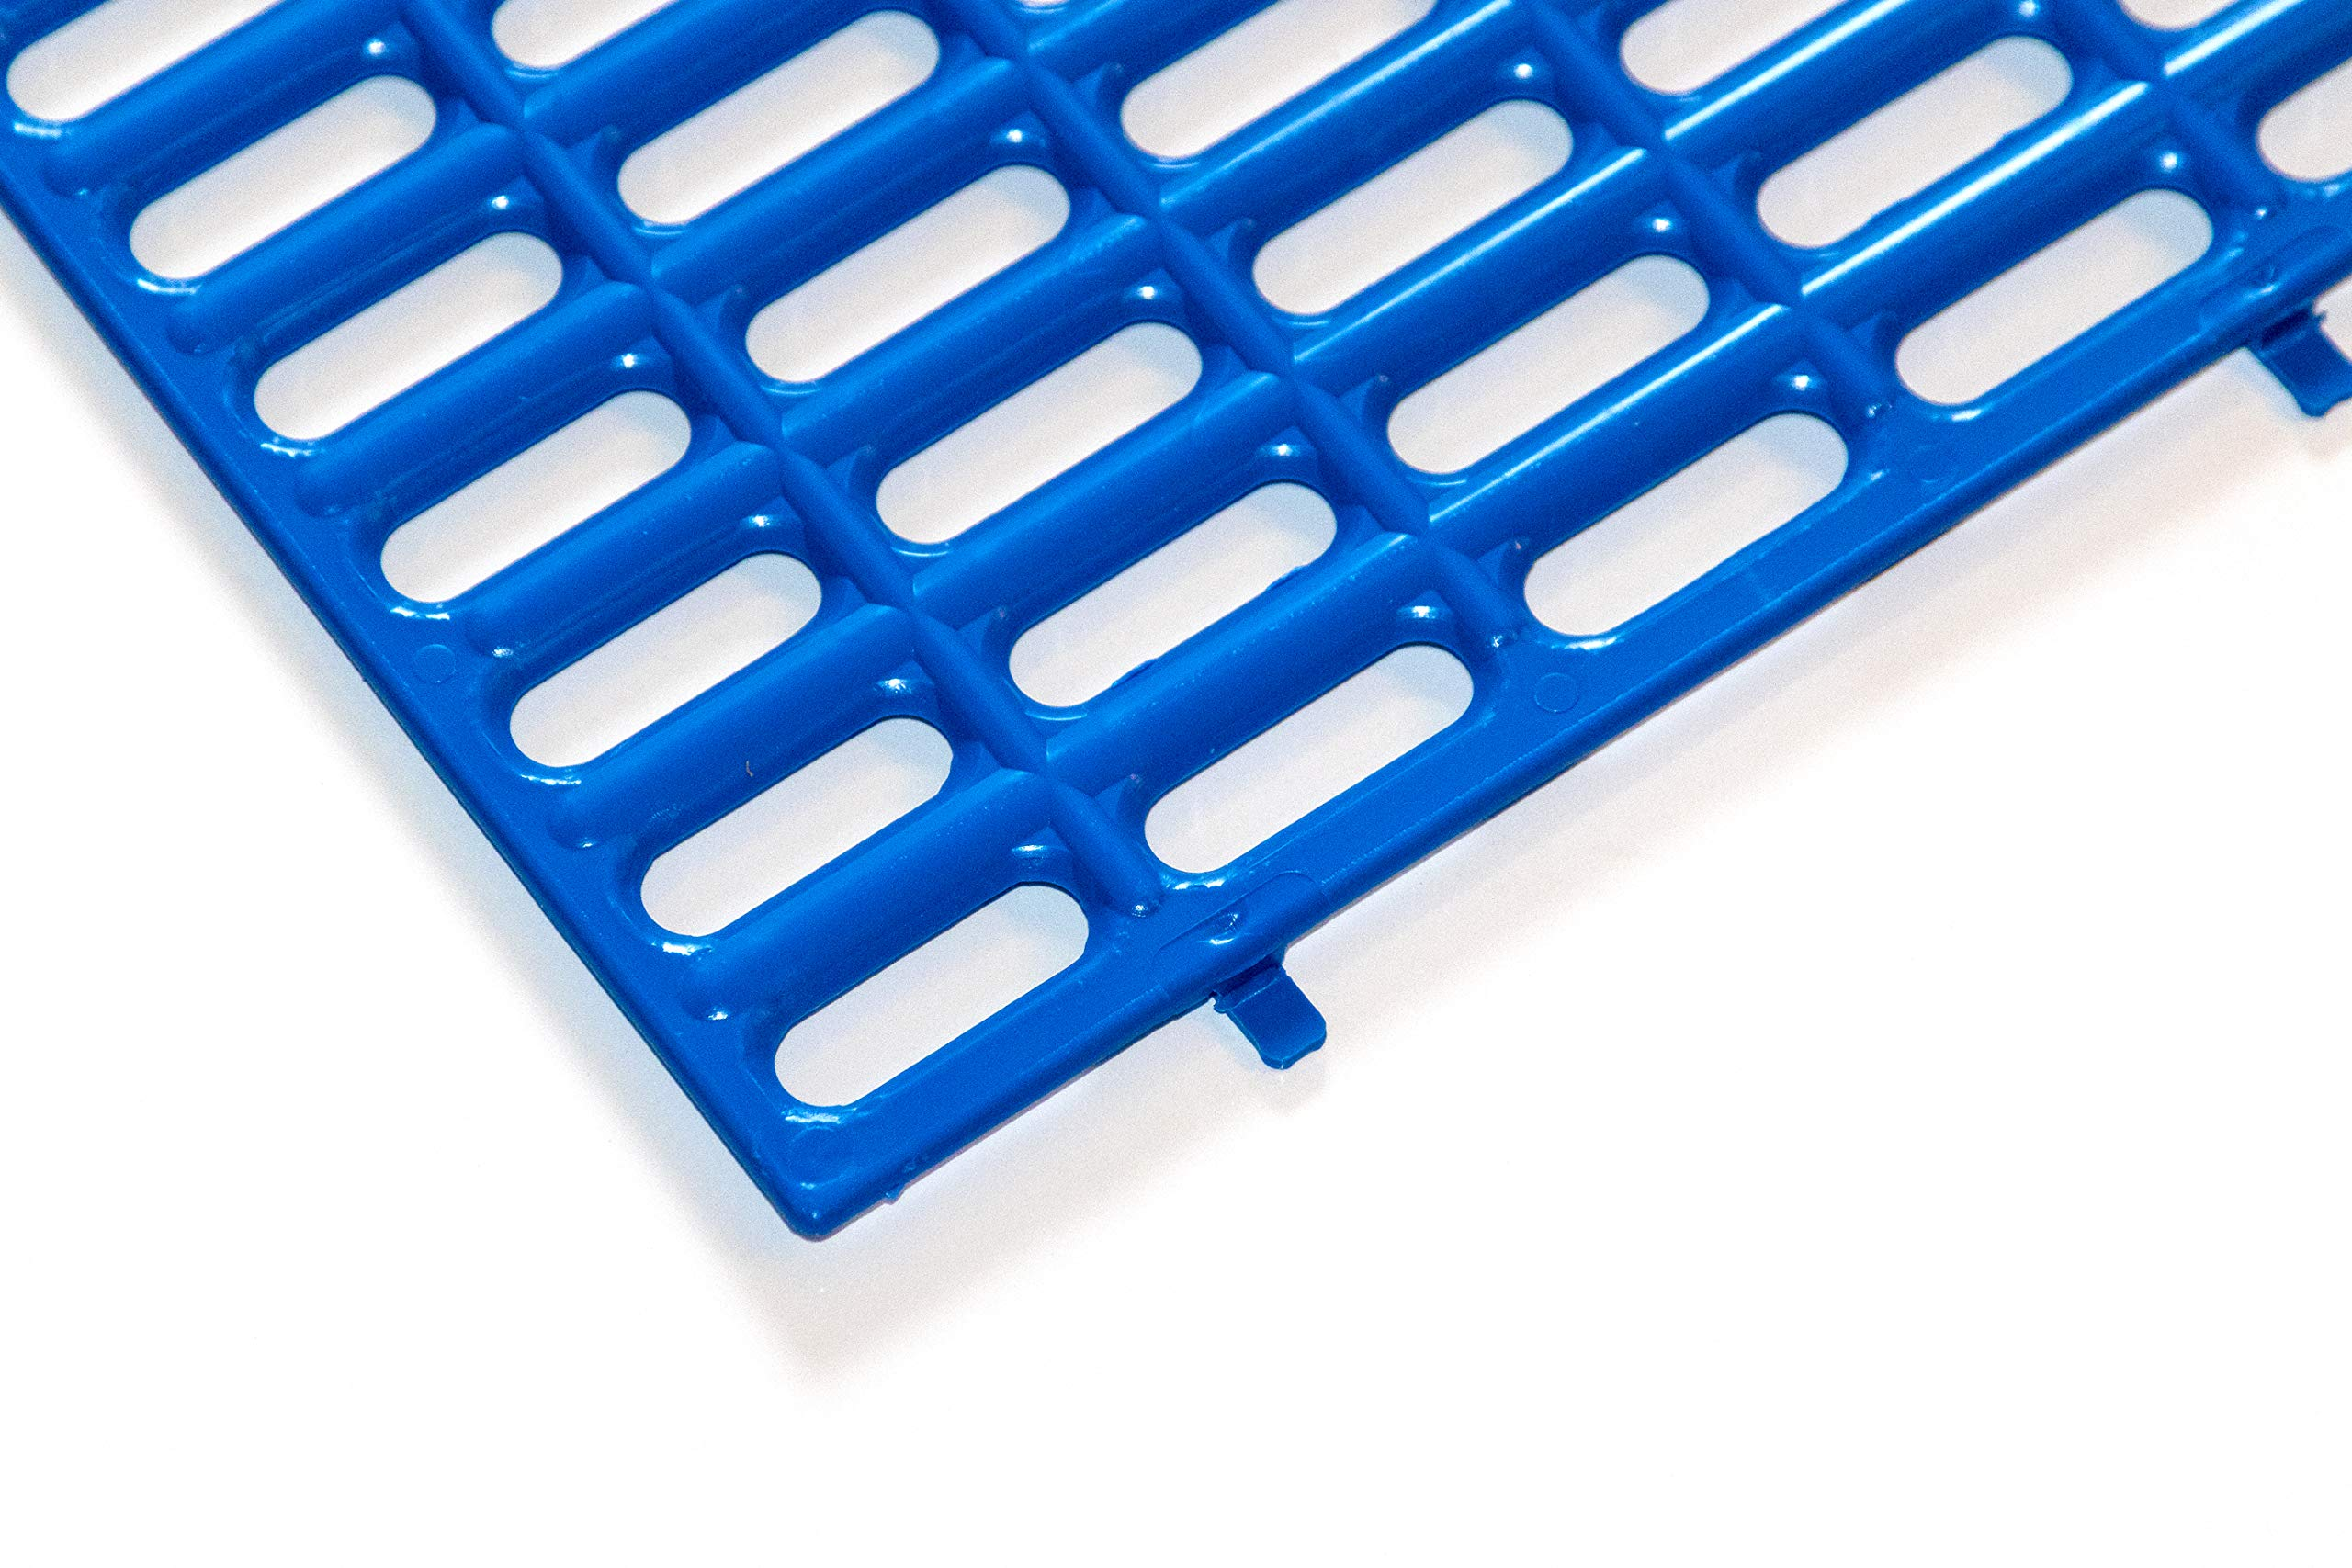 Cage Mat for Bunny Rabbits and Other Small Animals. Made in The USA. Protects Feet from Wire Floor. Sold in Quantities of 1, 6, or 12.